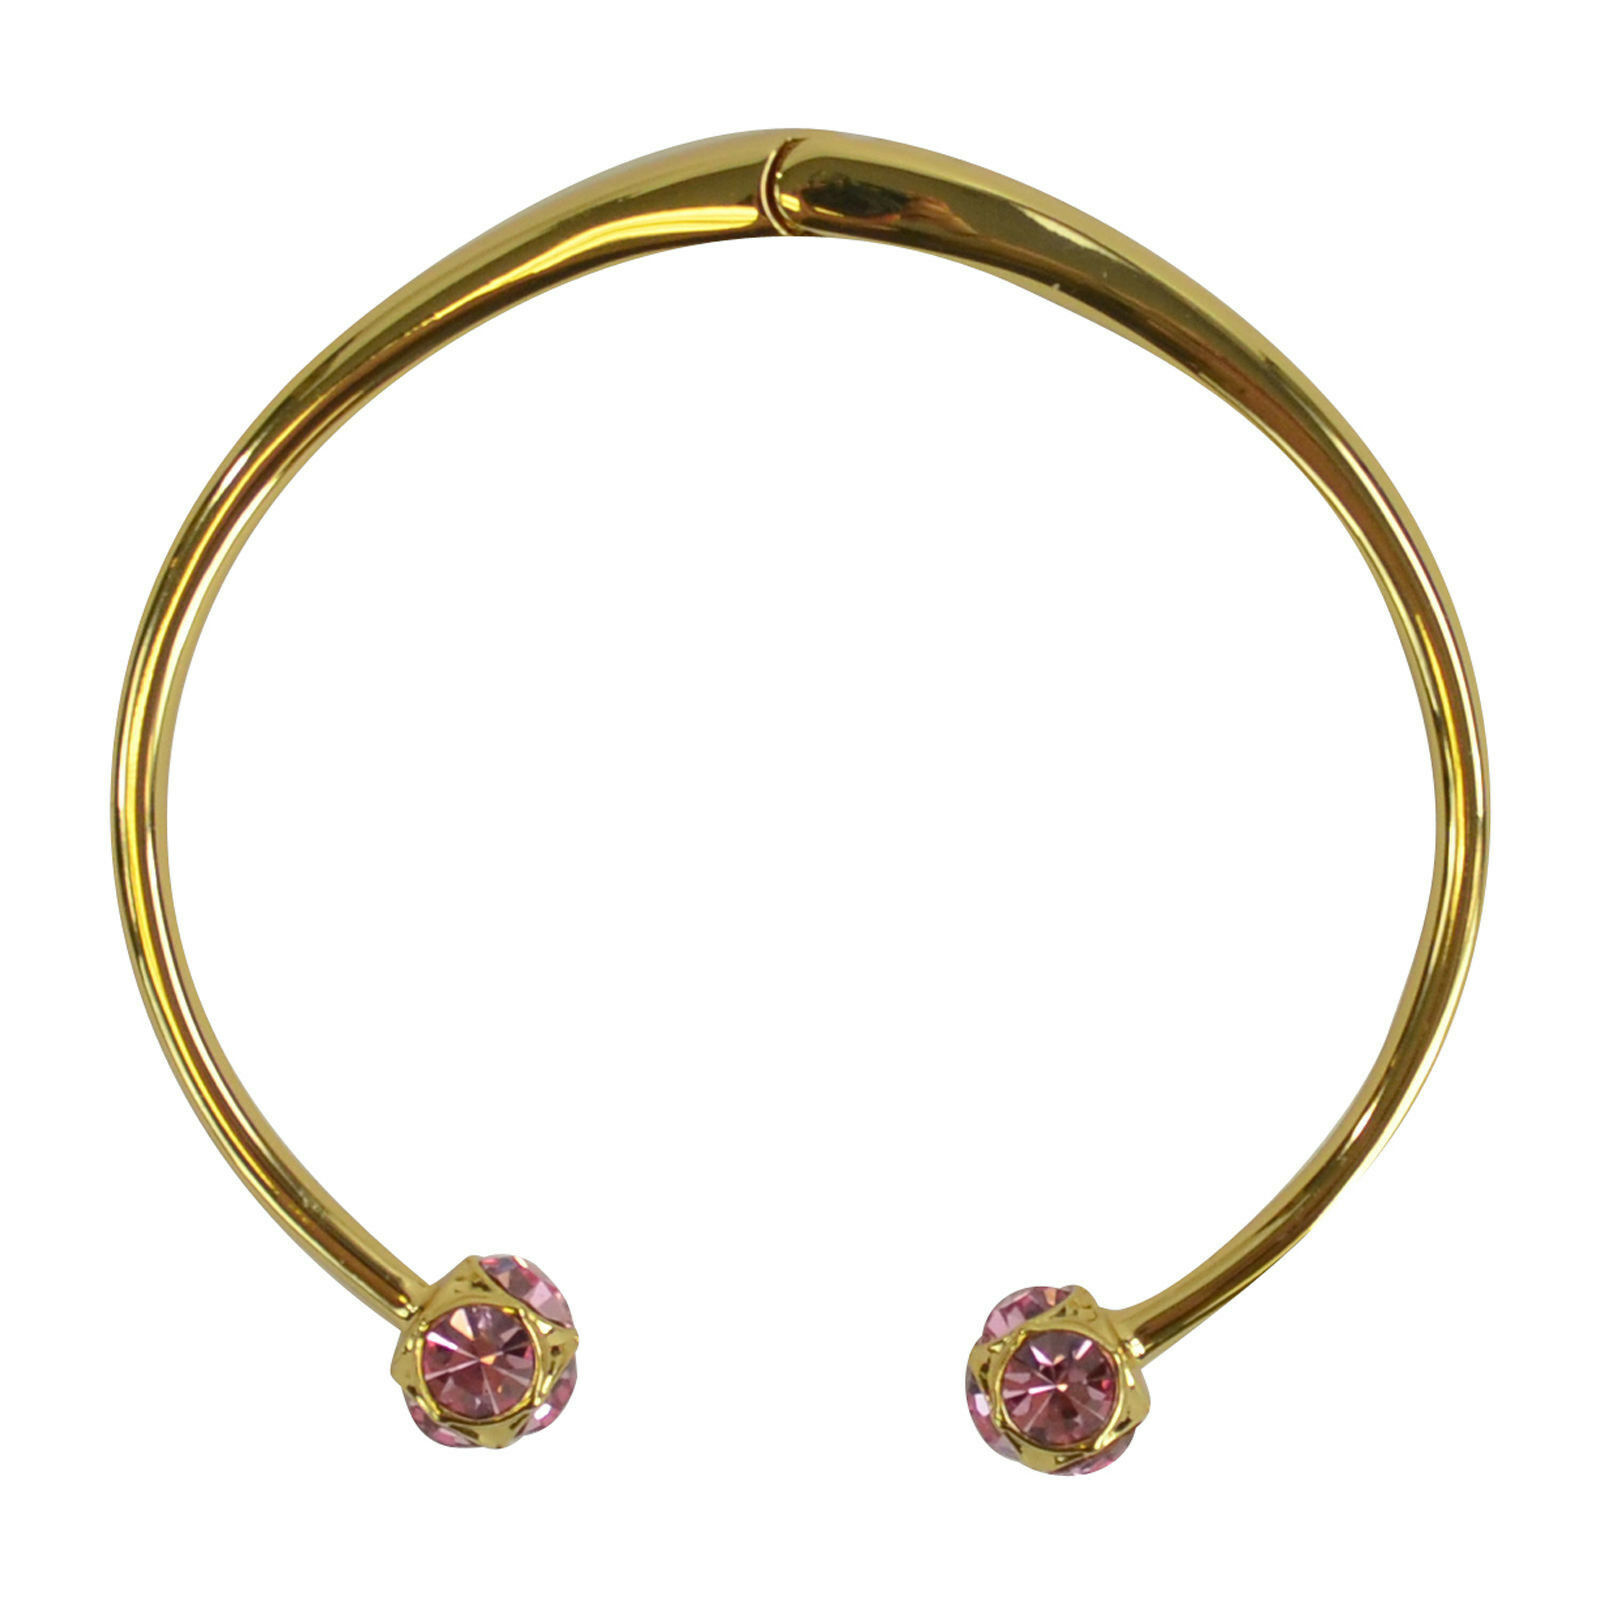 c05848c19cc78 Details about NEW Kate Spade Lady Marmalade Jeweled Stud Cuff Gold Bracelet  Light Pink $78+